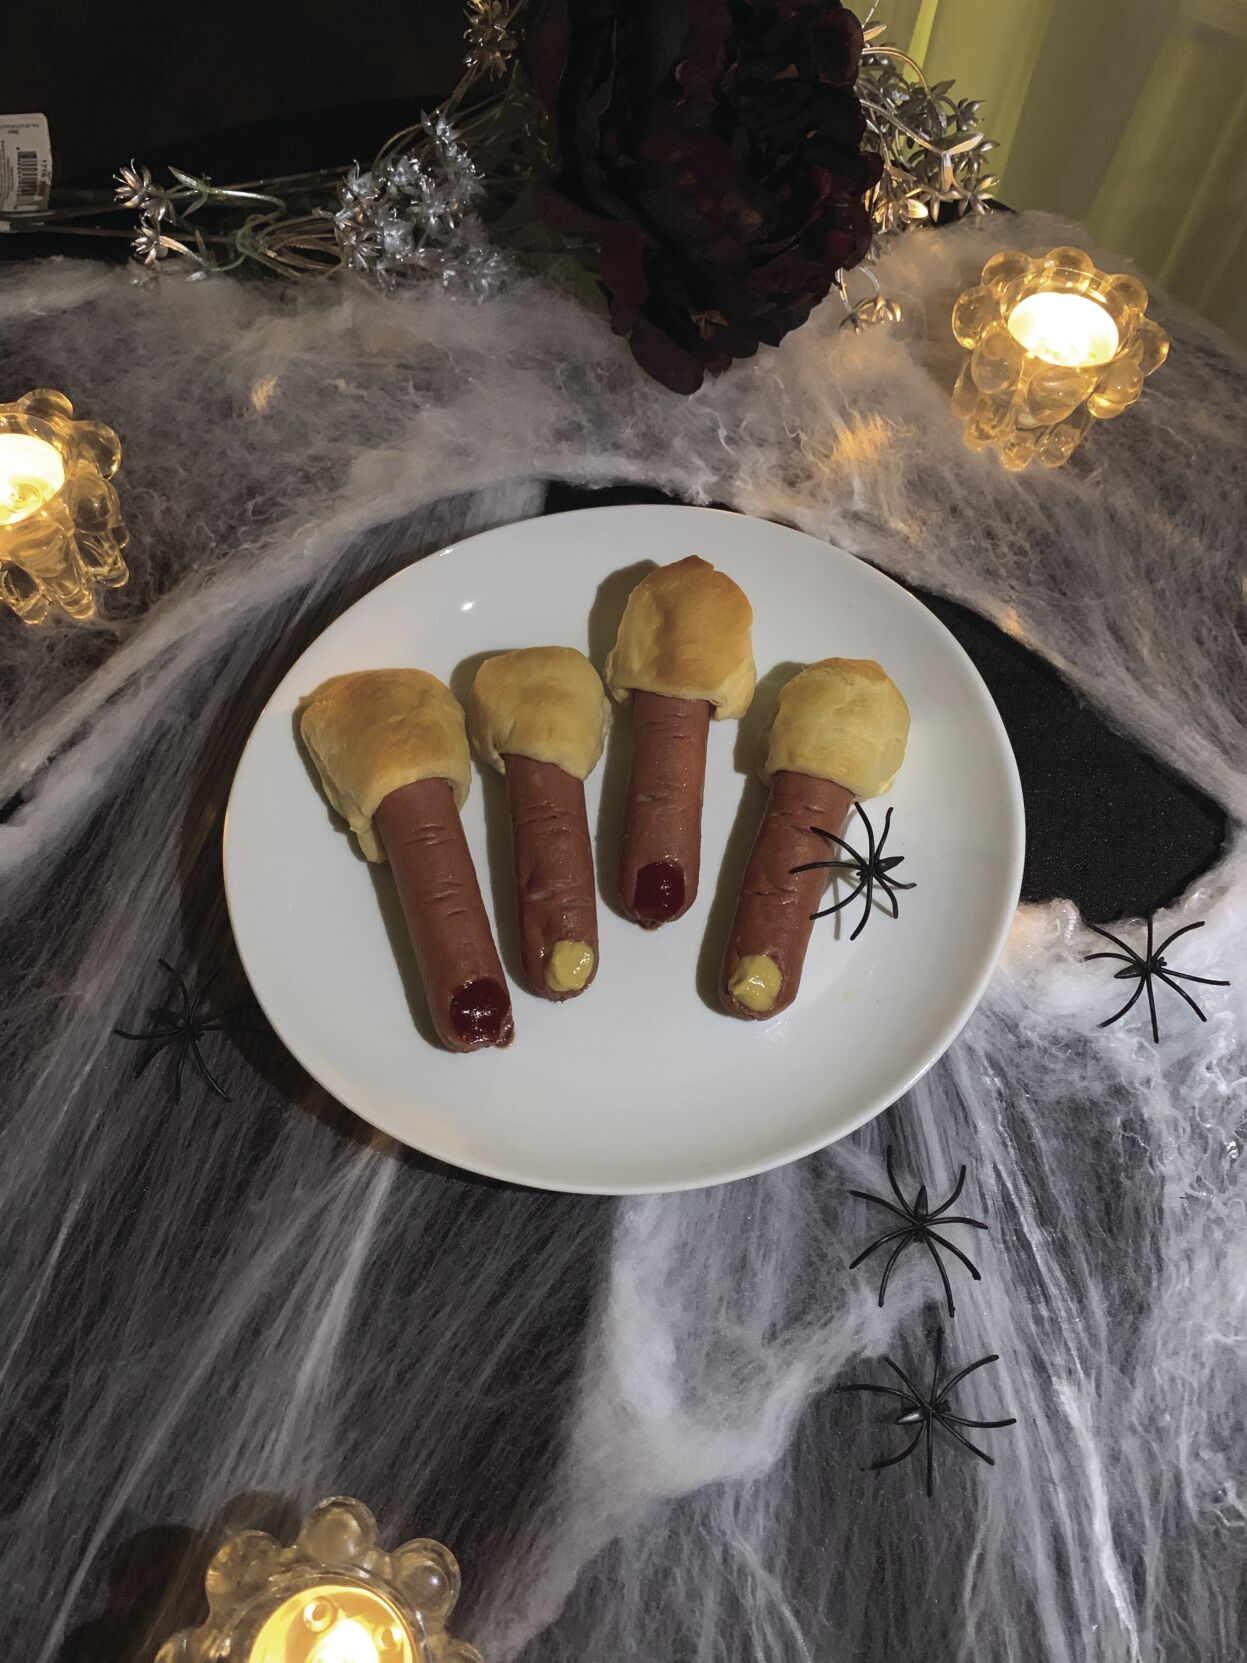 Hot dogs on a spooky plate